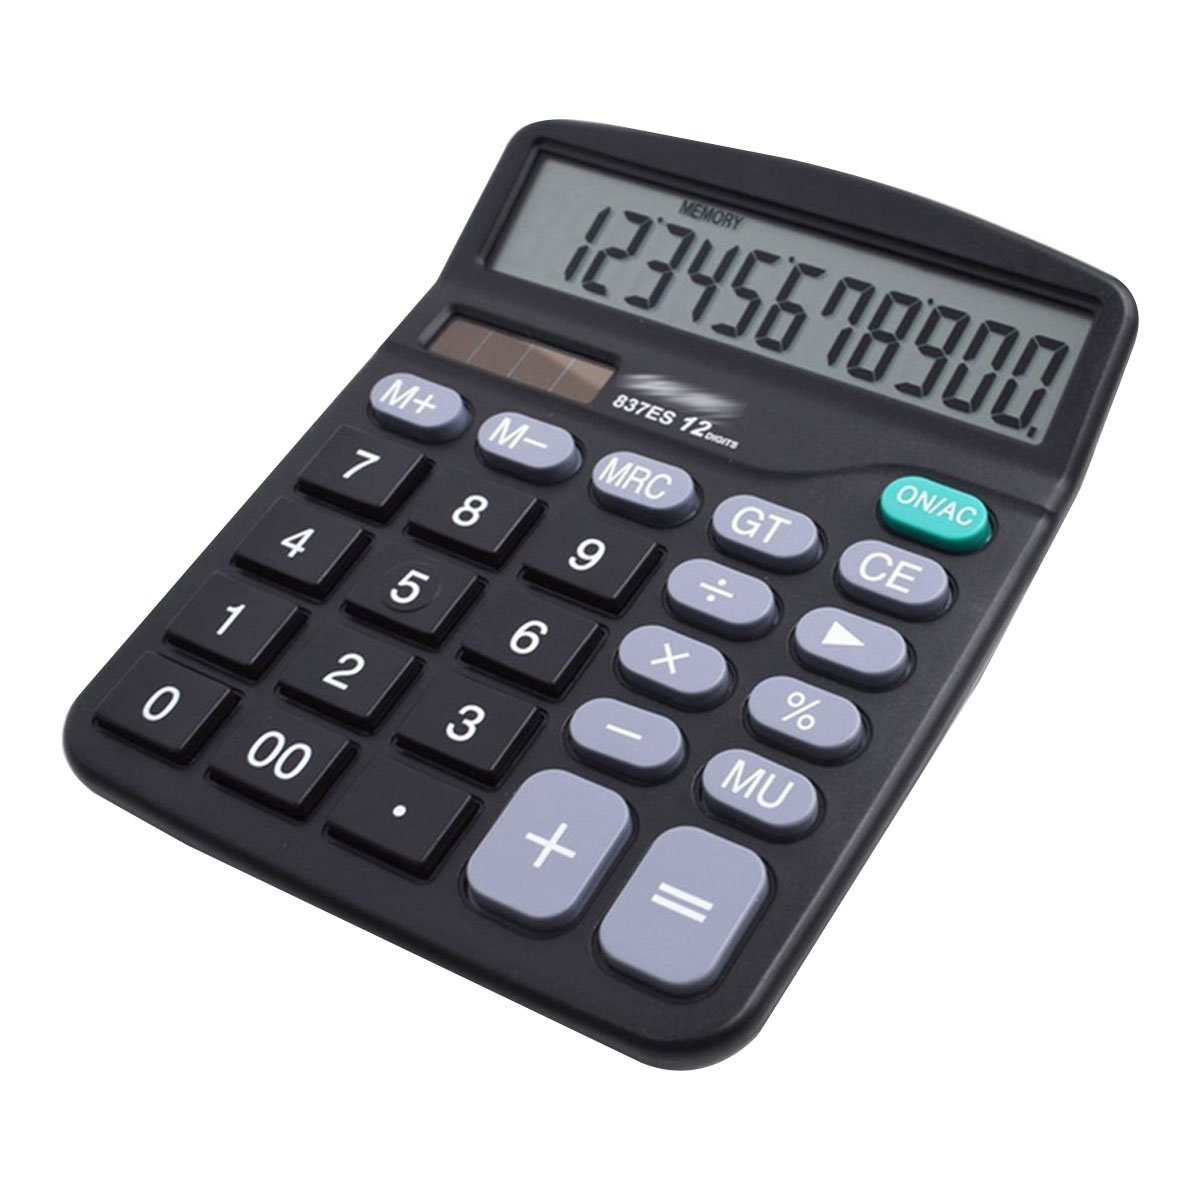 CLARA 12-Digit Large LCD Display Calculator Solar Battery Dual Power Office Calculator Large Buttons Calculator Black